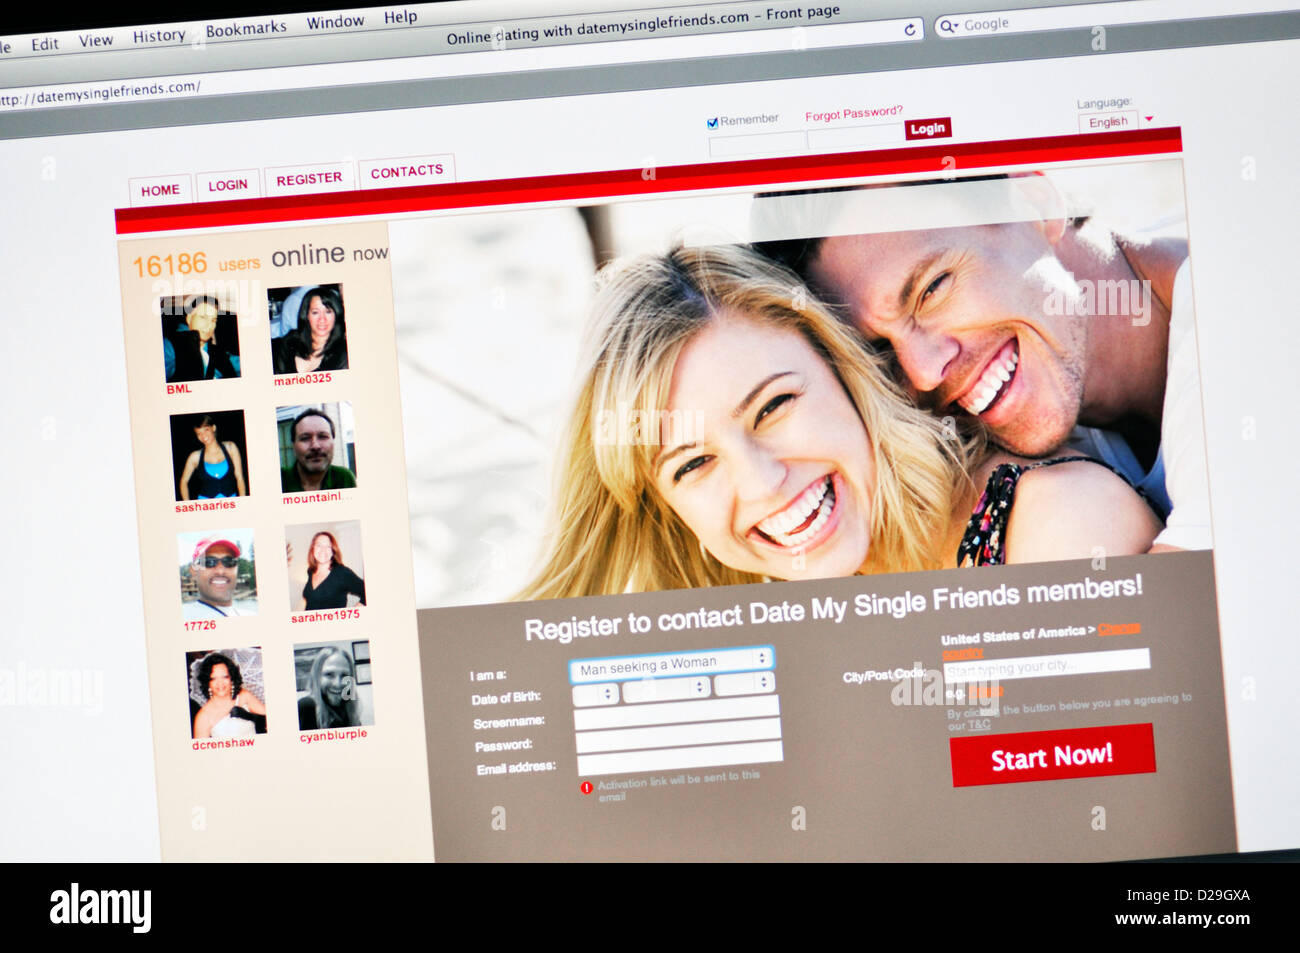 Where To Find A Date Online